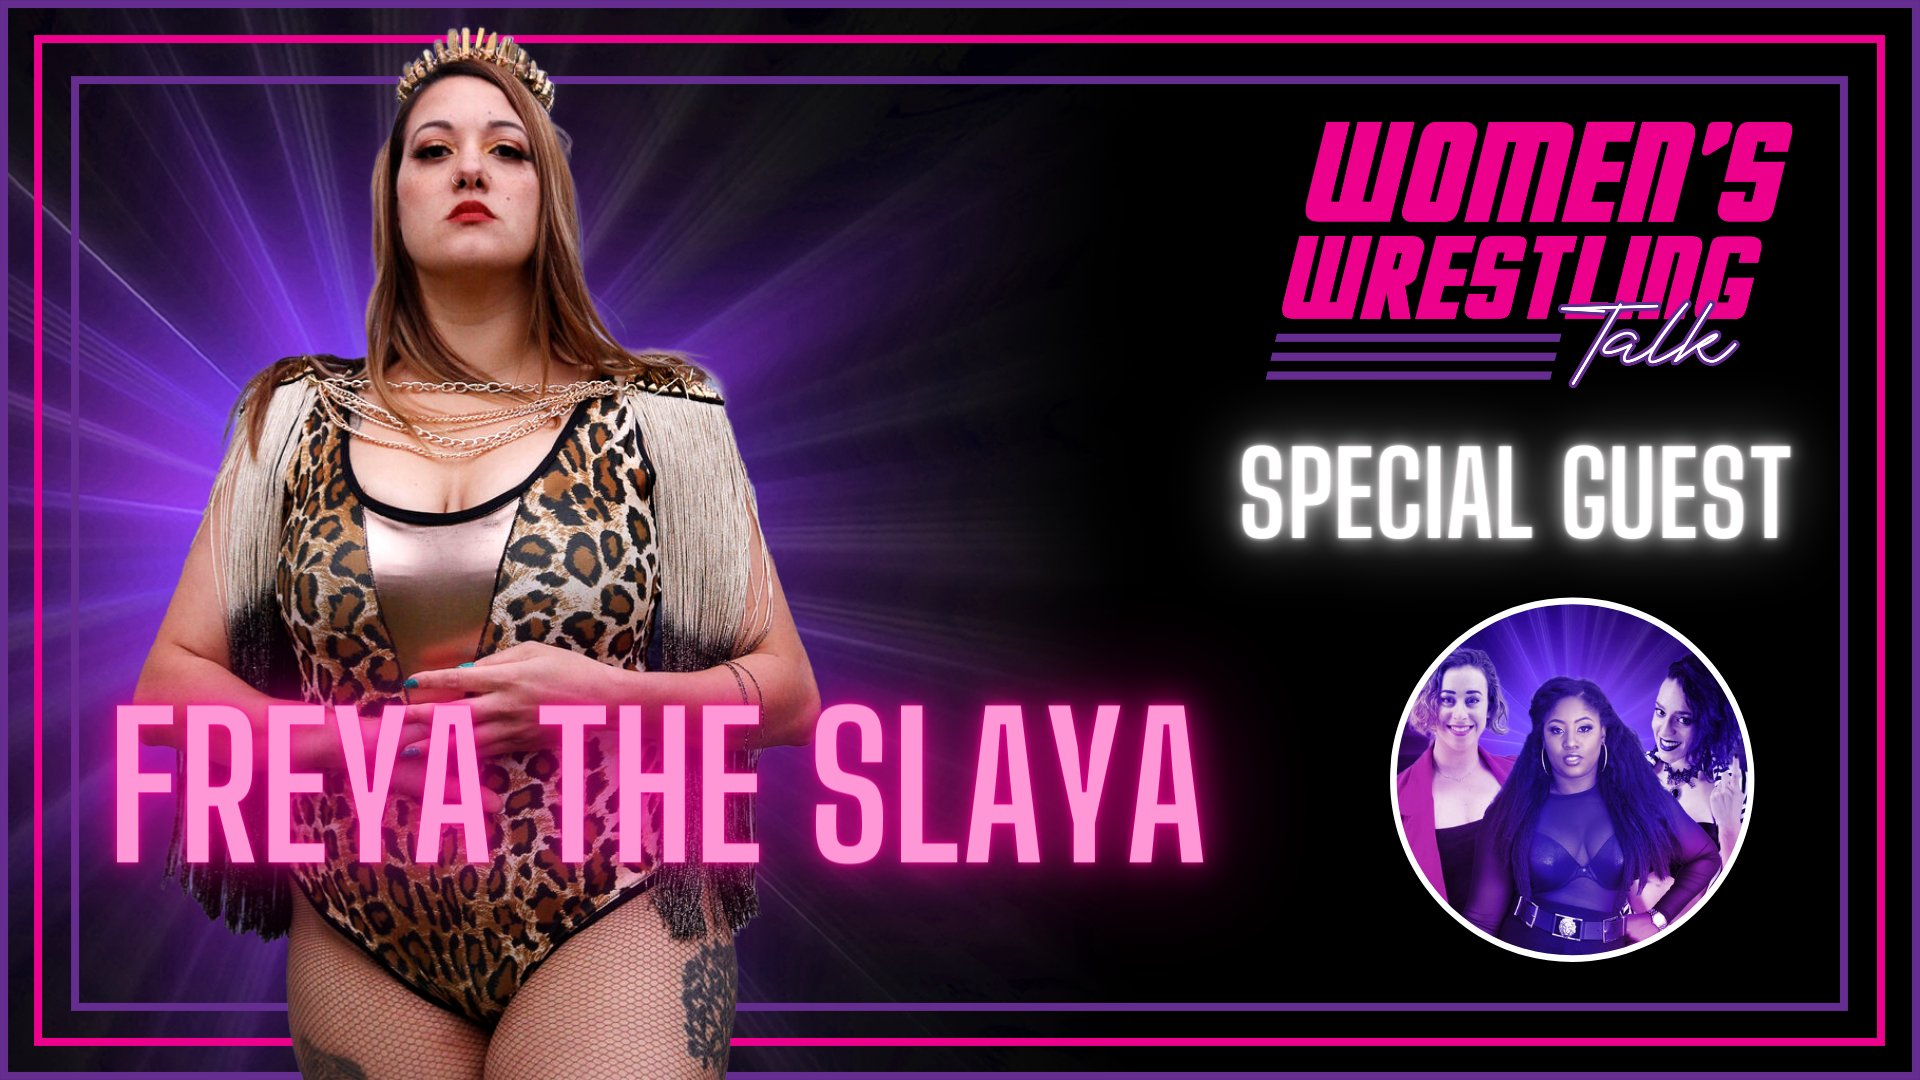 Women's Wrestling Talk Freya The Slaya